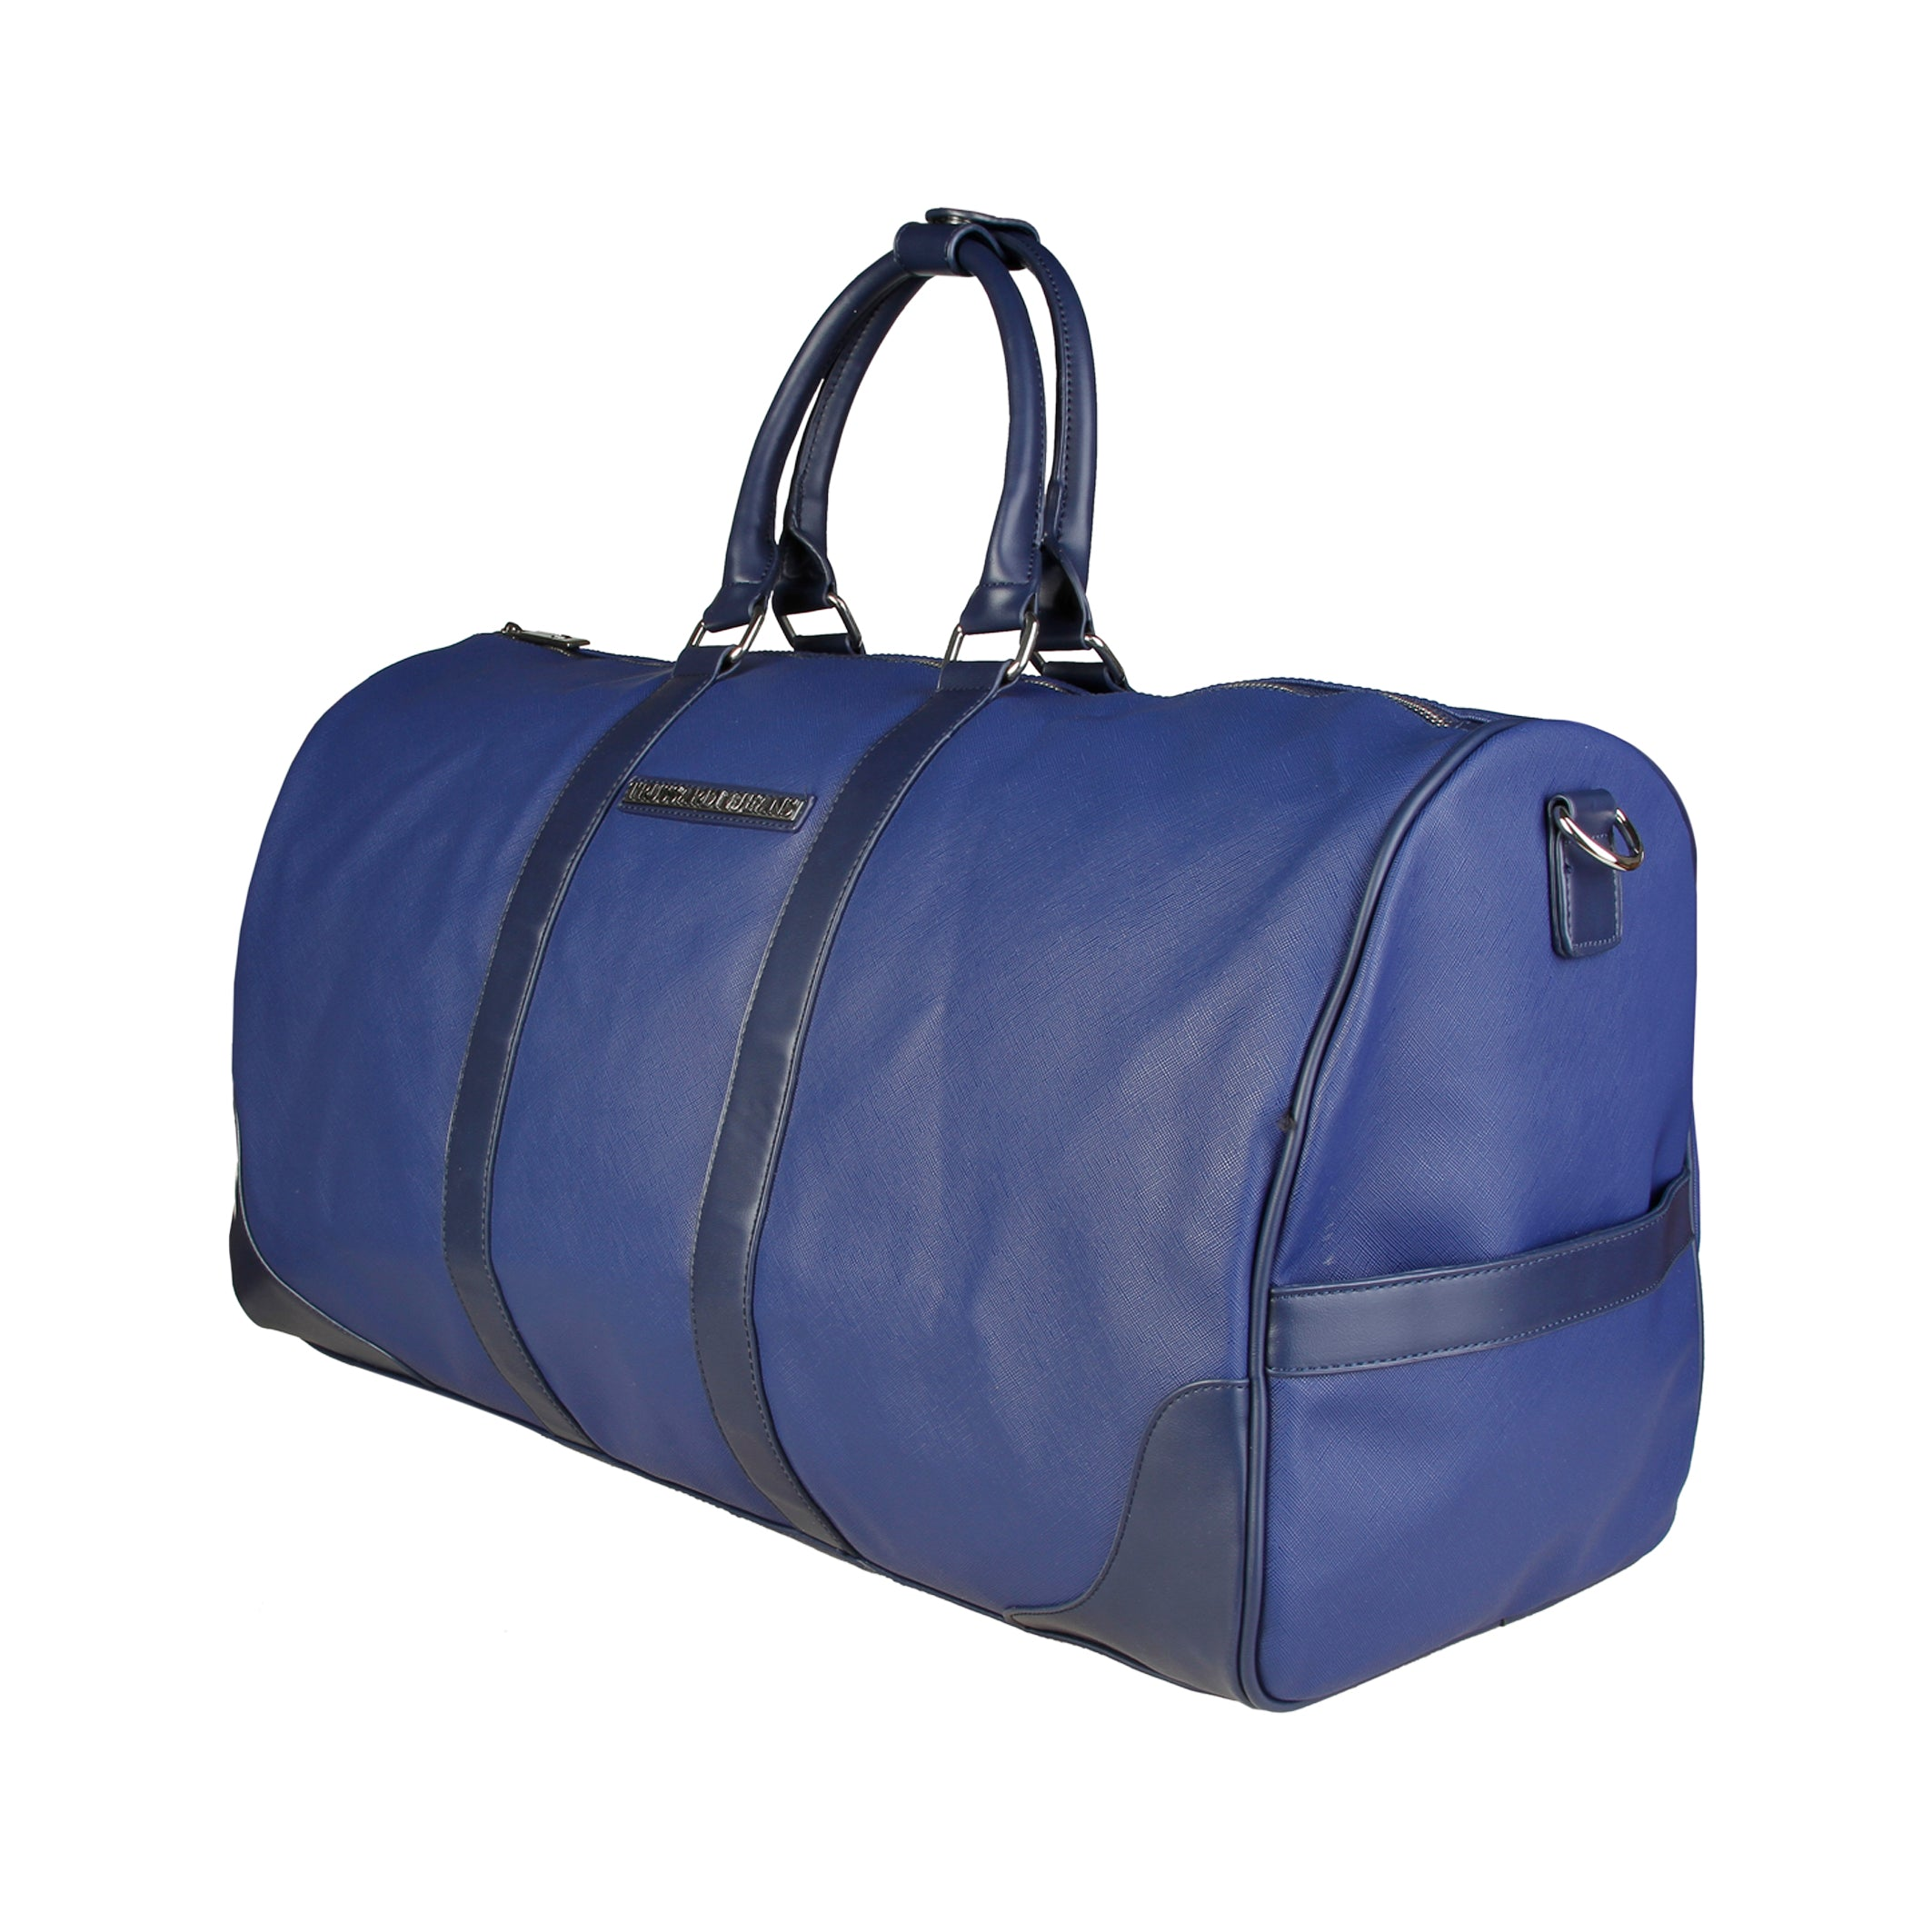 Trussardi Large Blue Saffiano Travel Bag - 71B993T_BLU